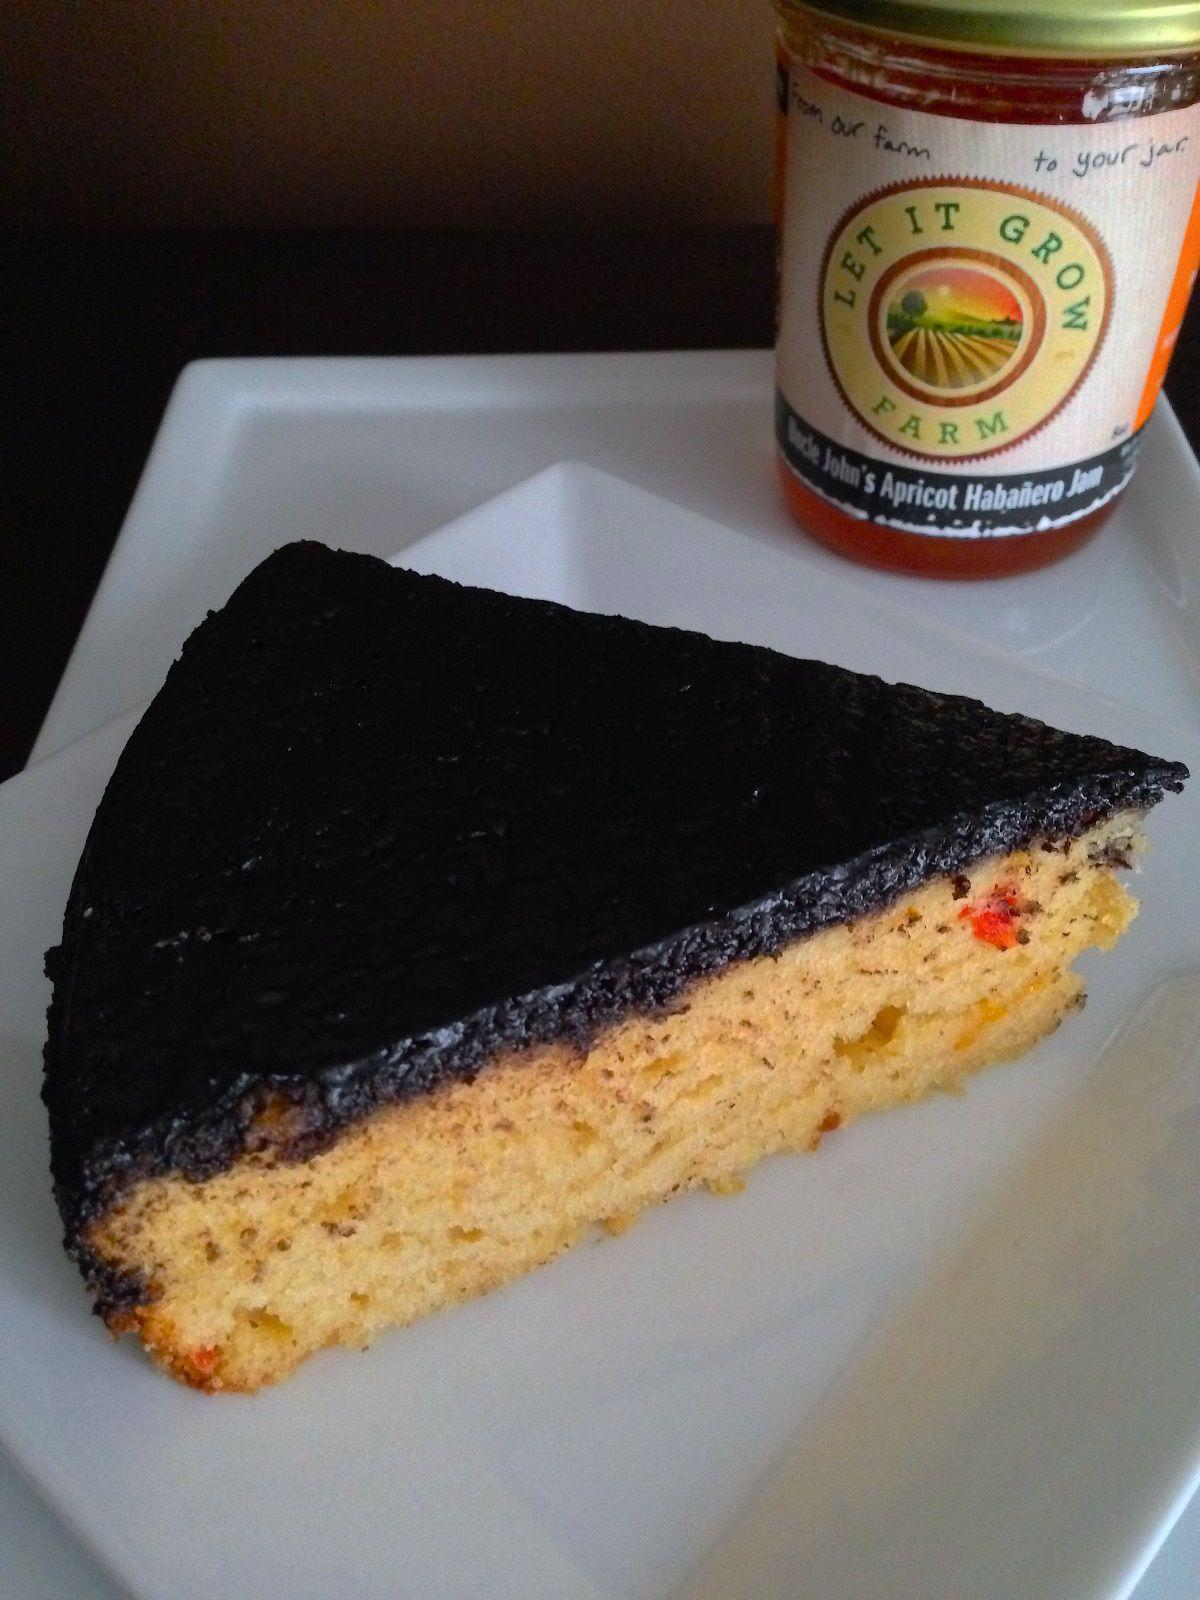 FRESH OFF THE FARM: Citrus Habanero Cake by Claire Nines